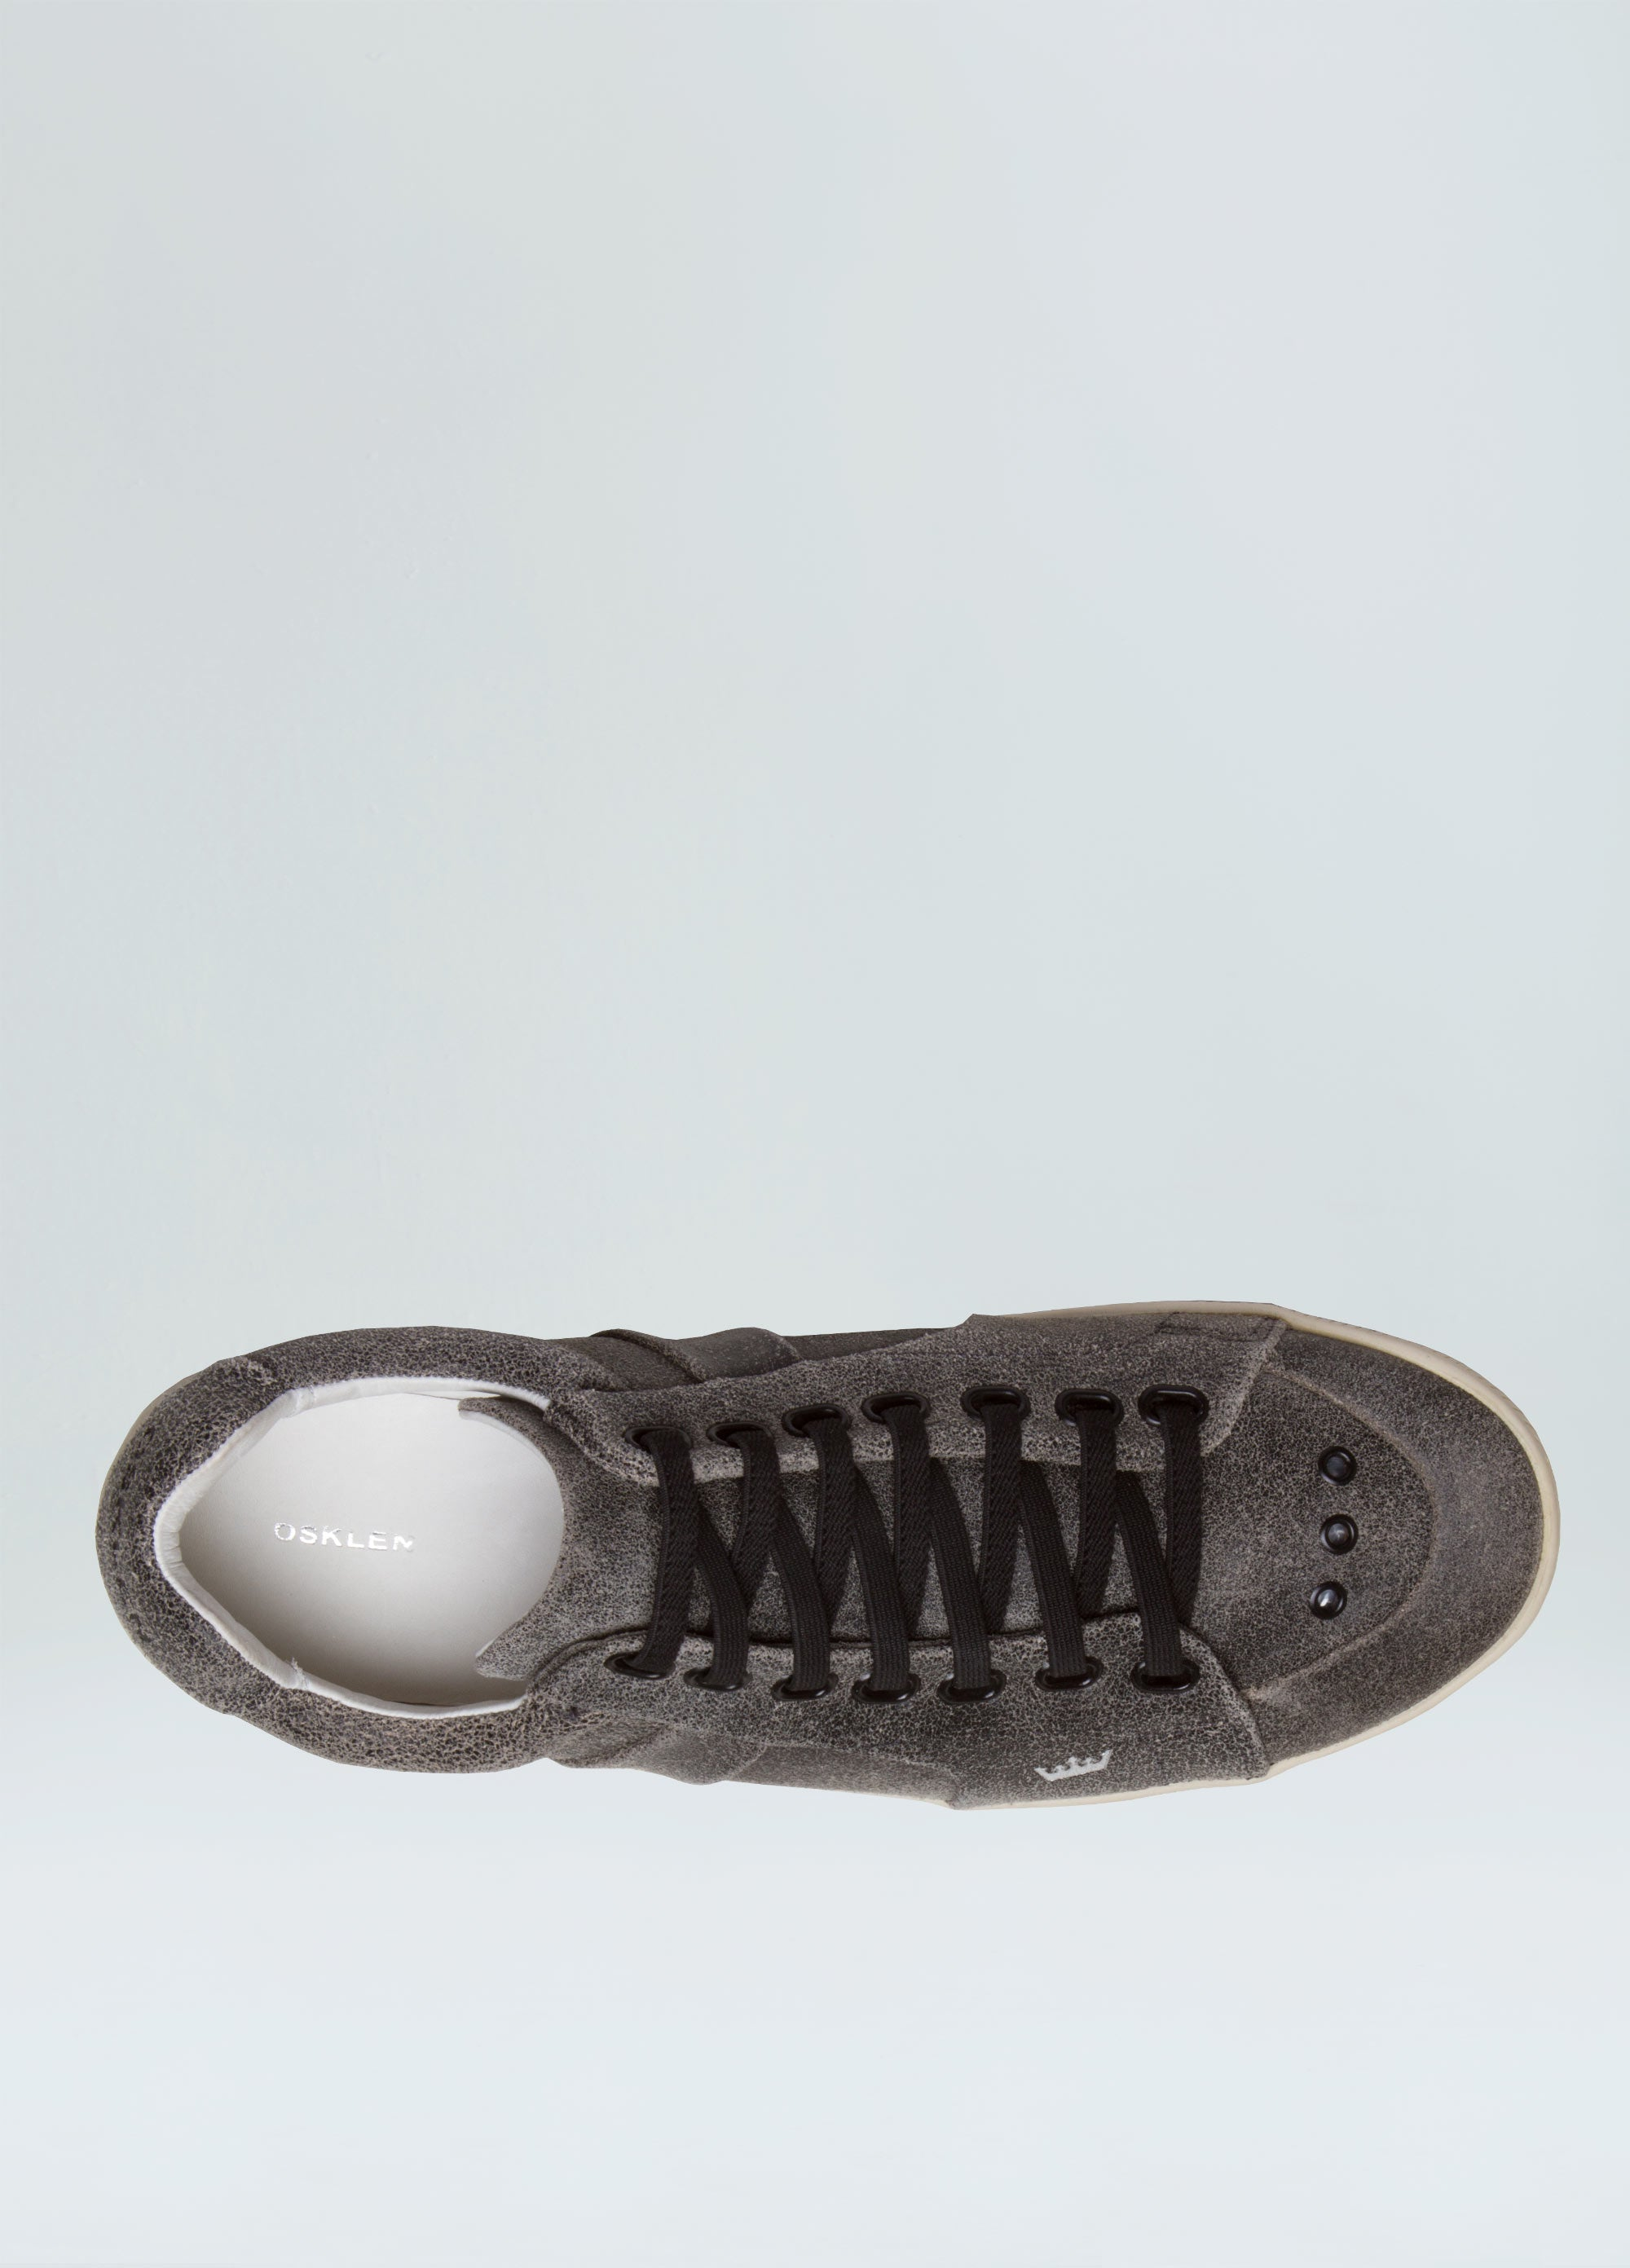 MENS ELASTIC WORN OUT LEATHER SNEAKERS